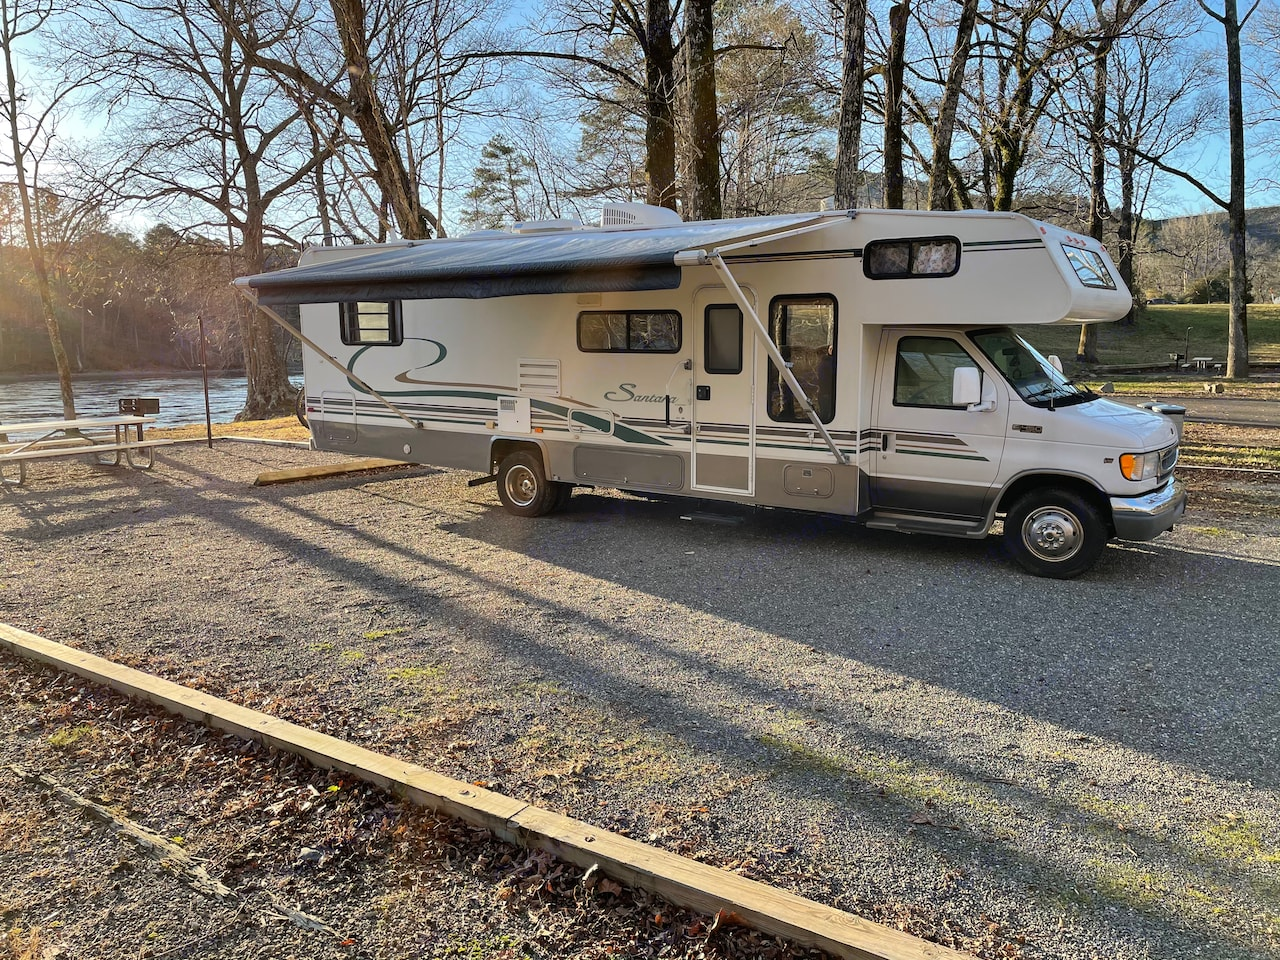 Our trip to Hot Springs national park to go fishing, where our RV spread her wings at this beautiful riverside campground. Coachmen Santara 2001